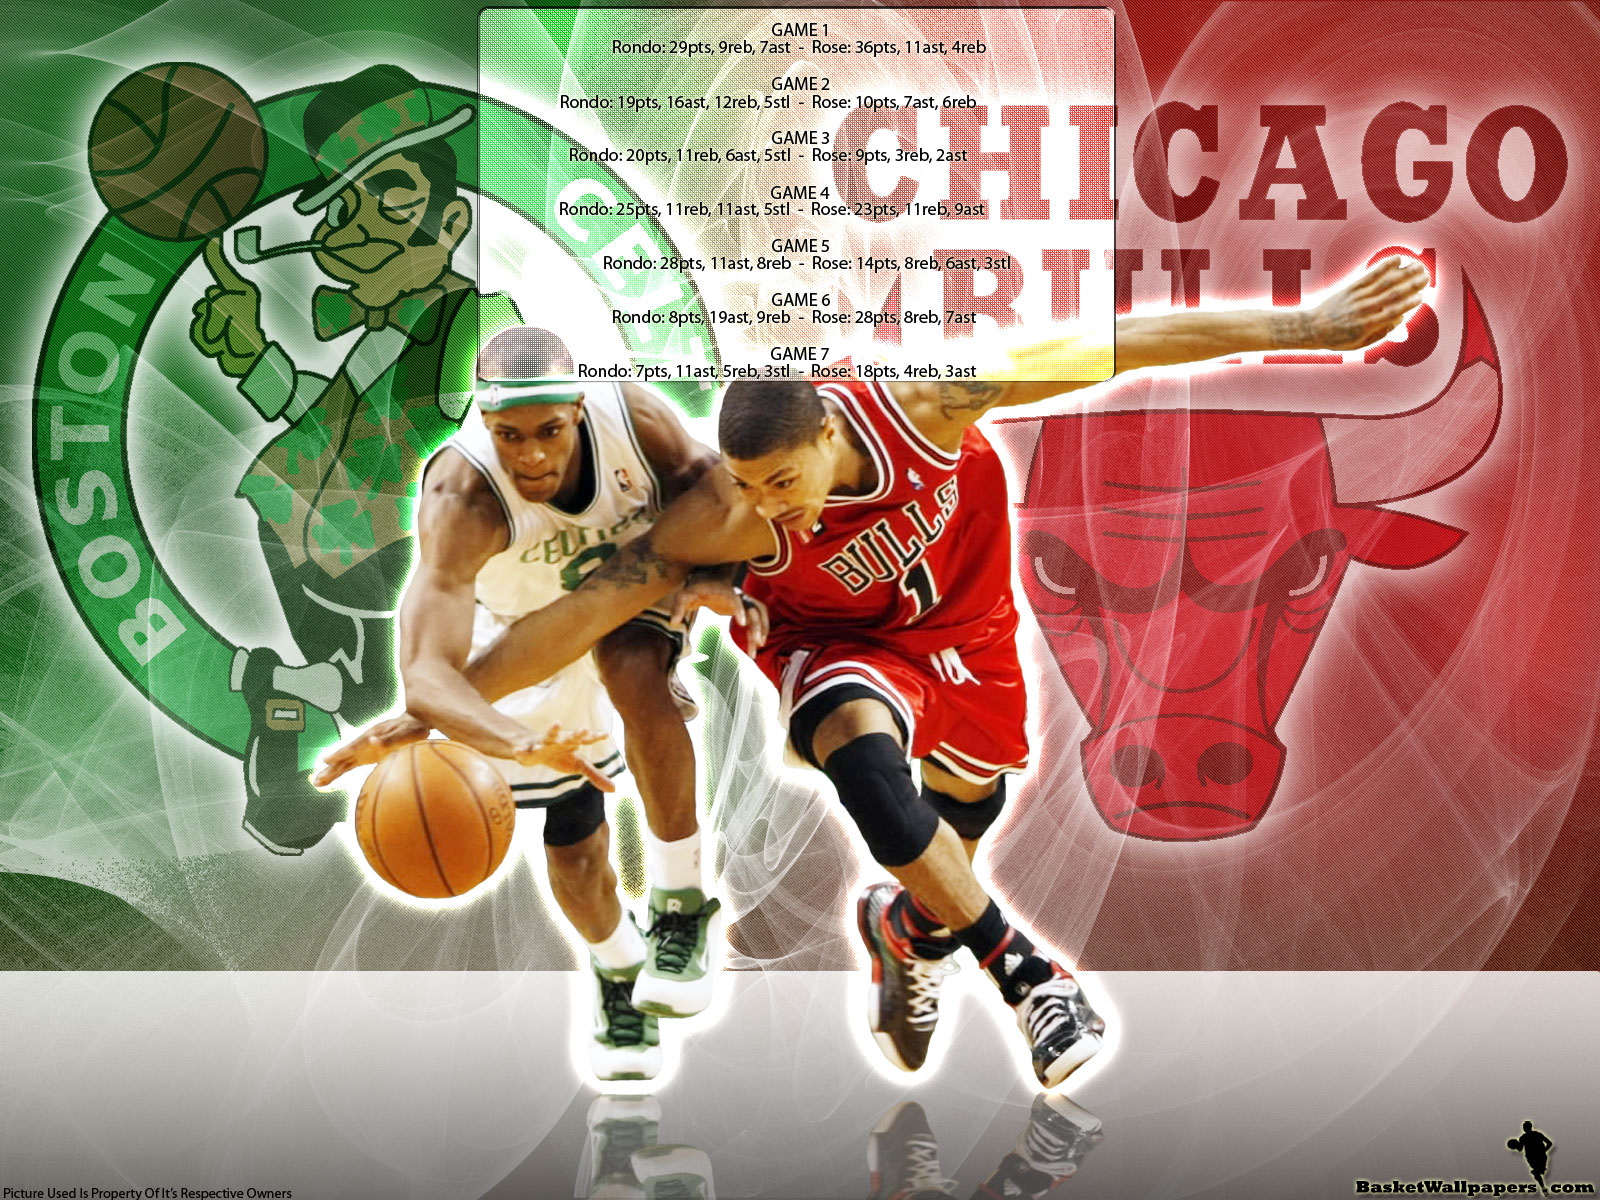 Derrick Rose Wallpapers Basketball Wallpapers at BasketWallpapers 1600x1200